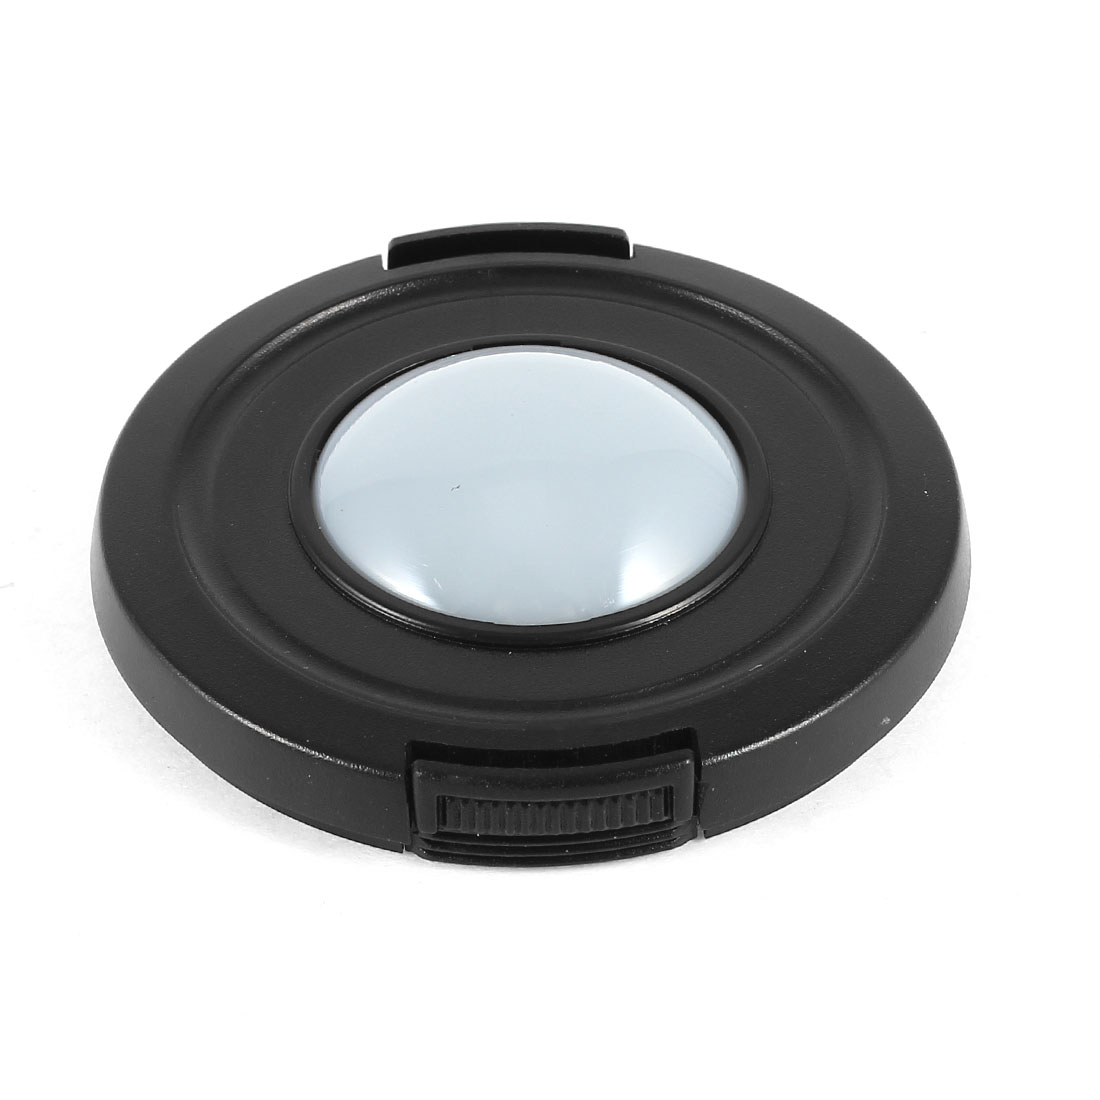 55mm Anti Scratches Filter Mount White Balance WB Lens Cap for DC DV Camera